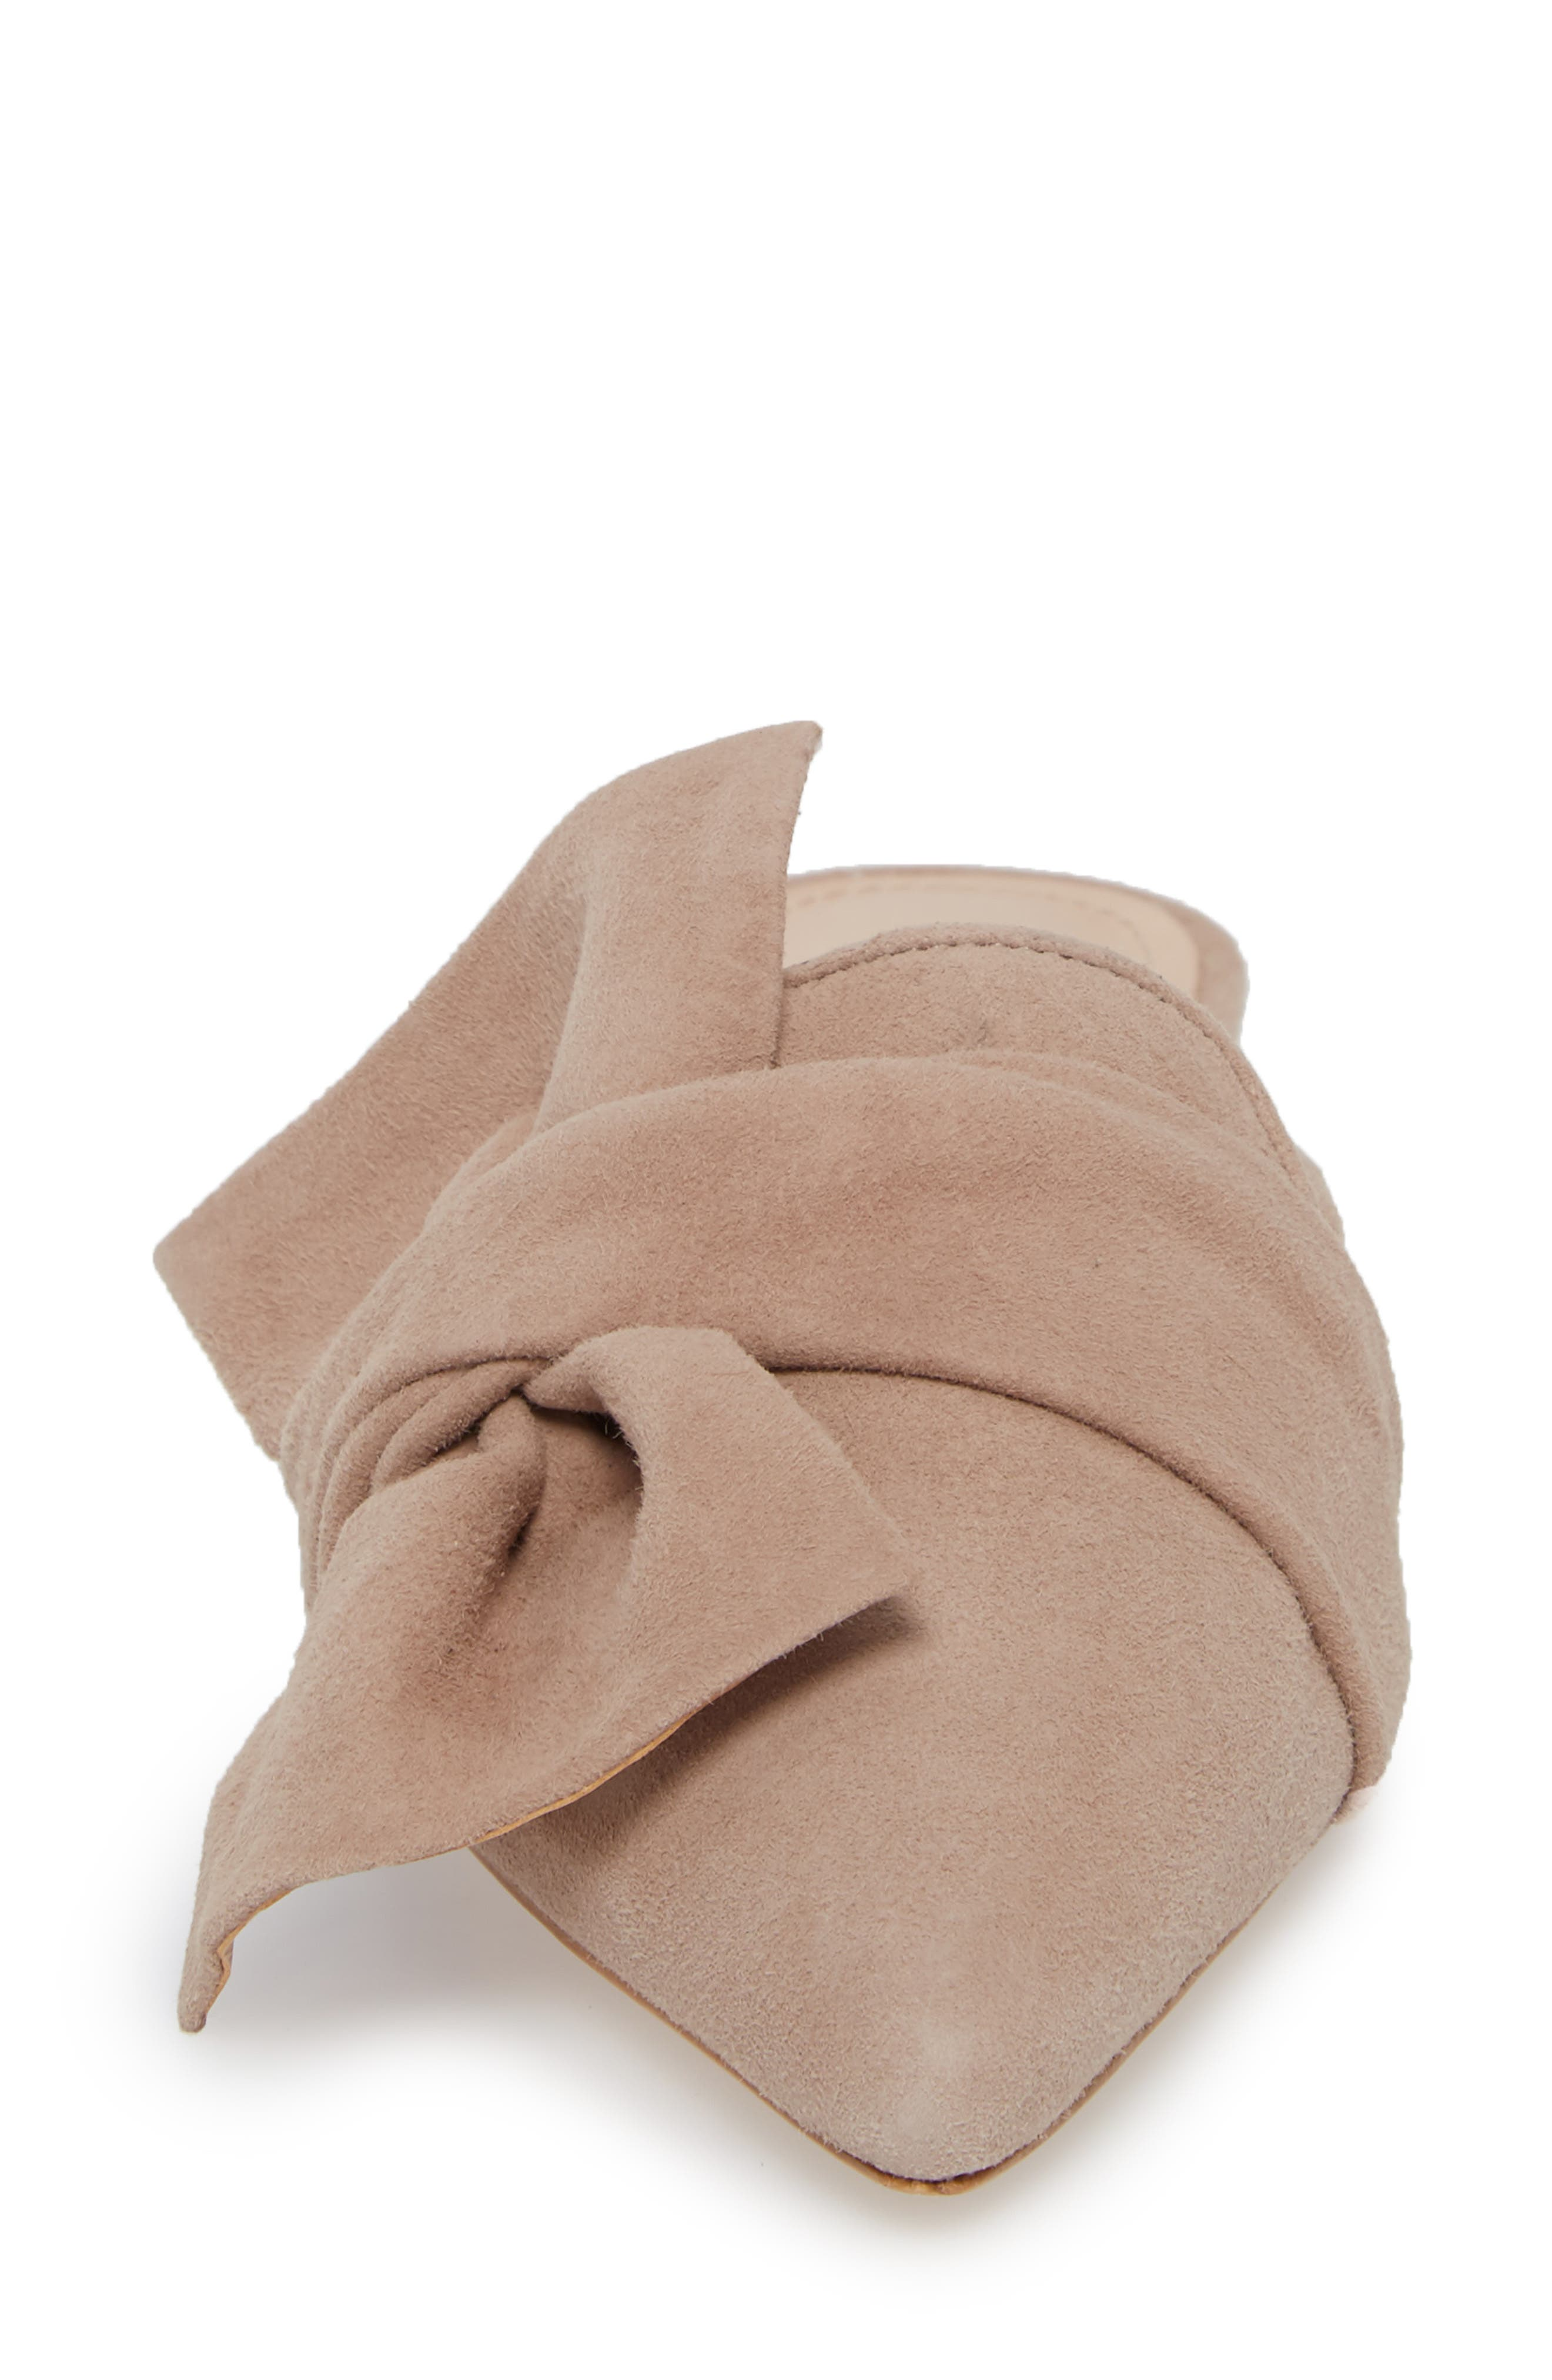 D'Ana Knotted Loafer Mule,                             Alternate thumbnail 4, color,                             NEUTRAL SUEDE